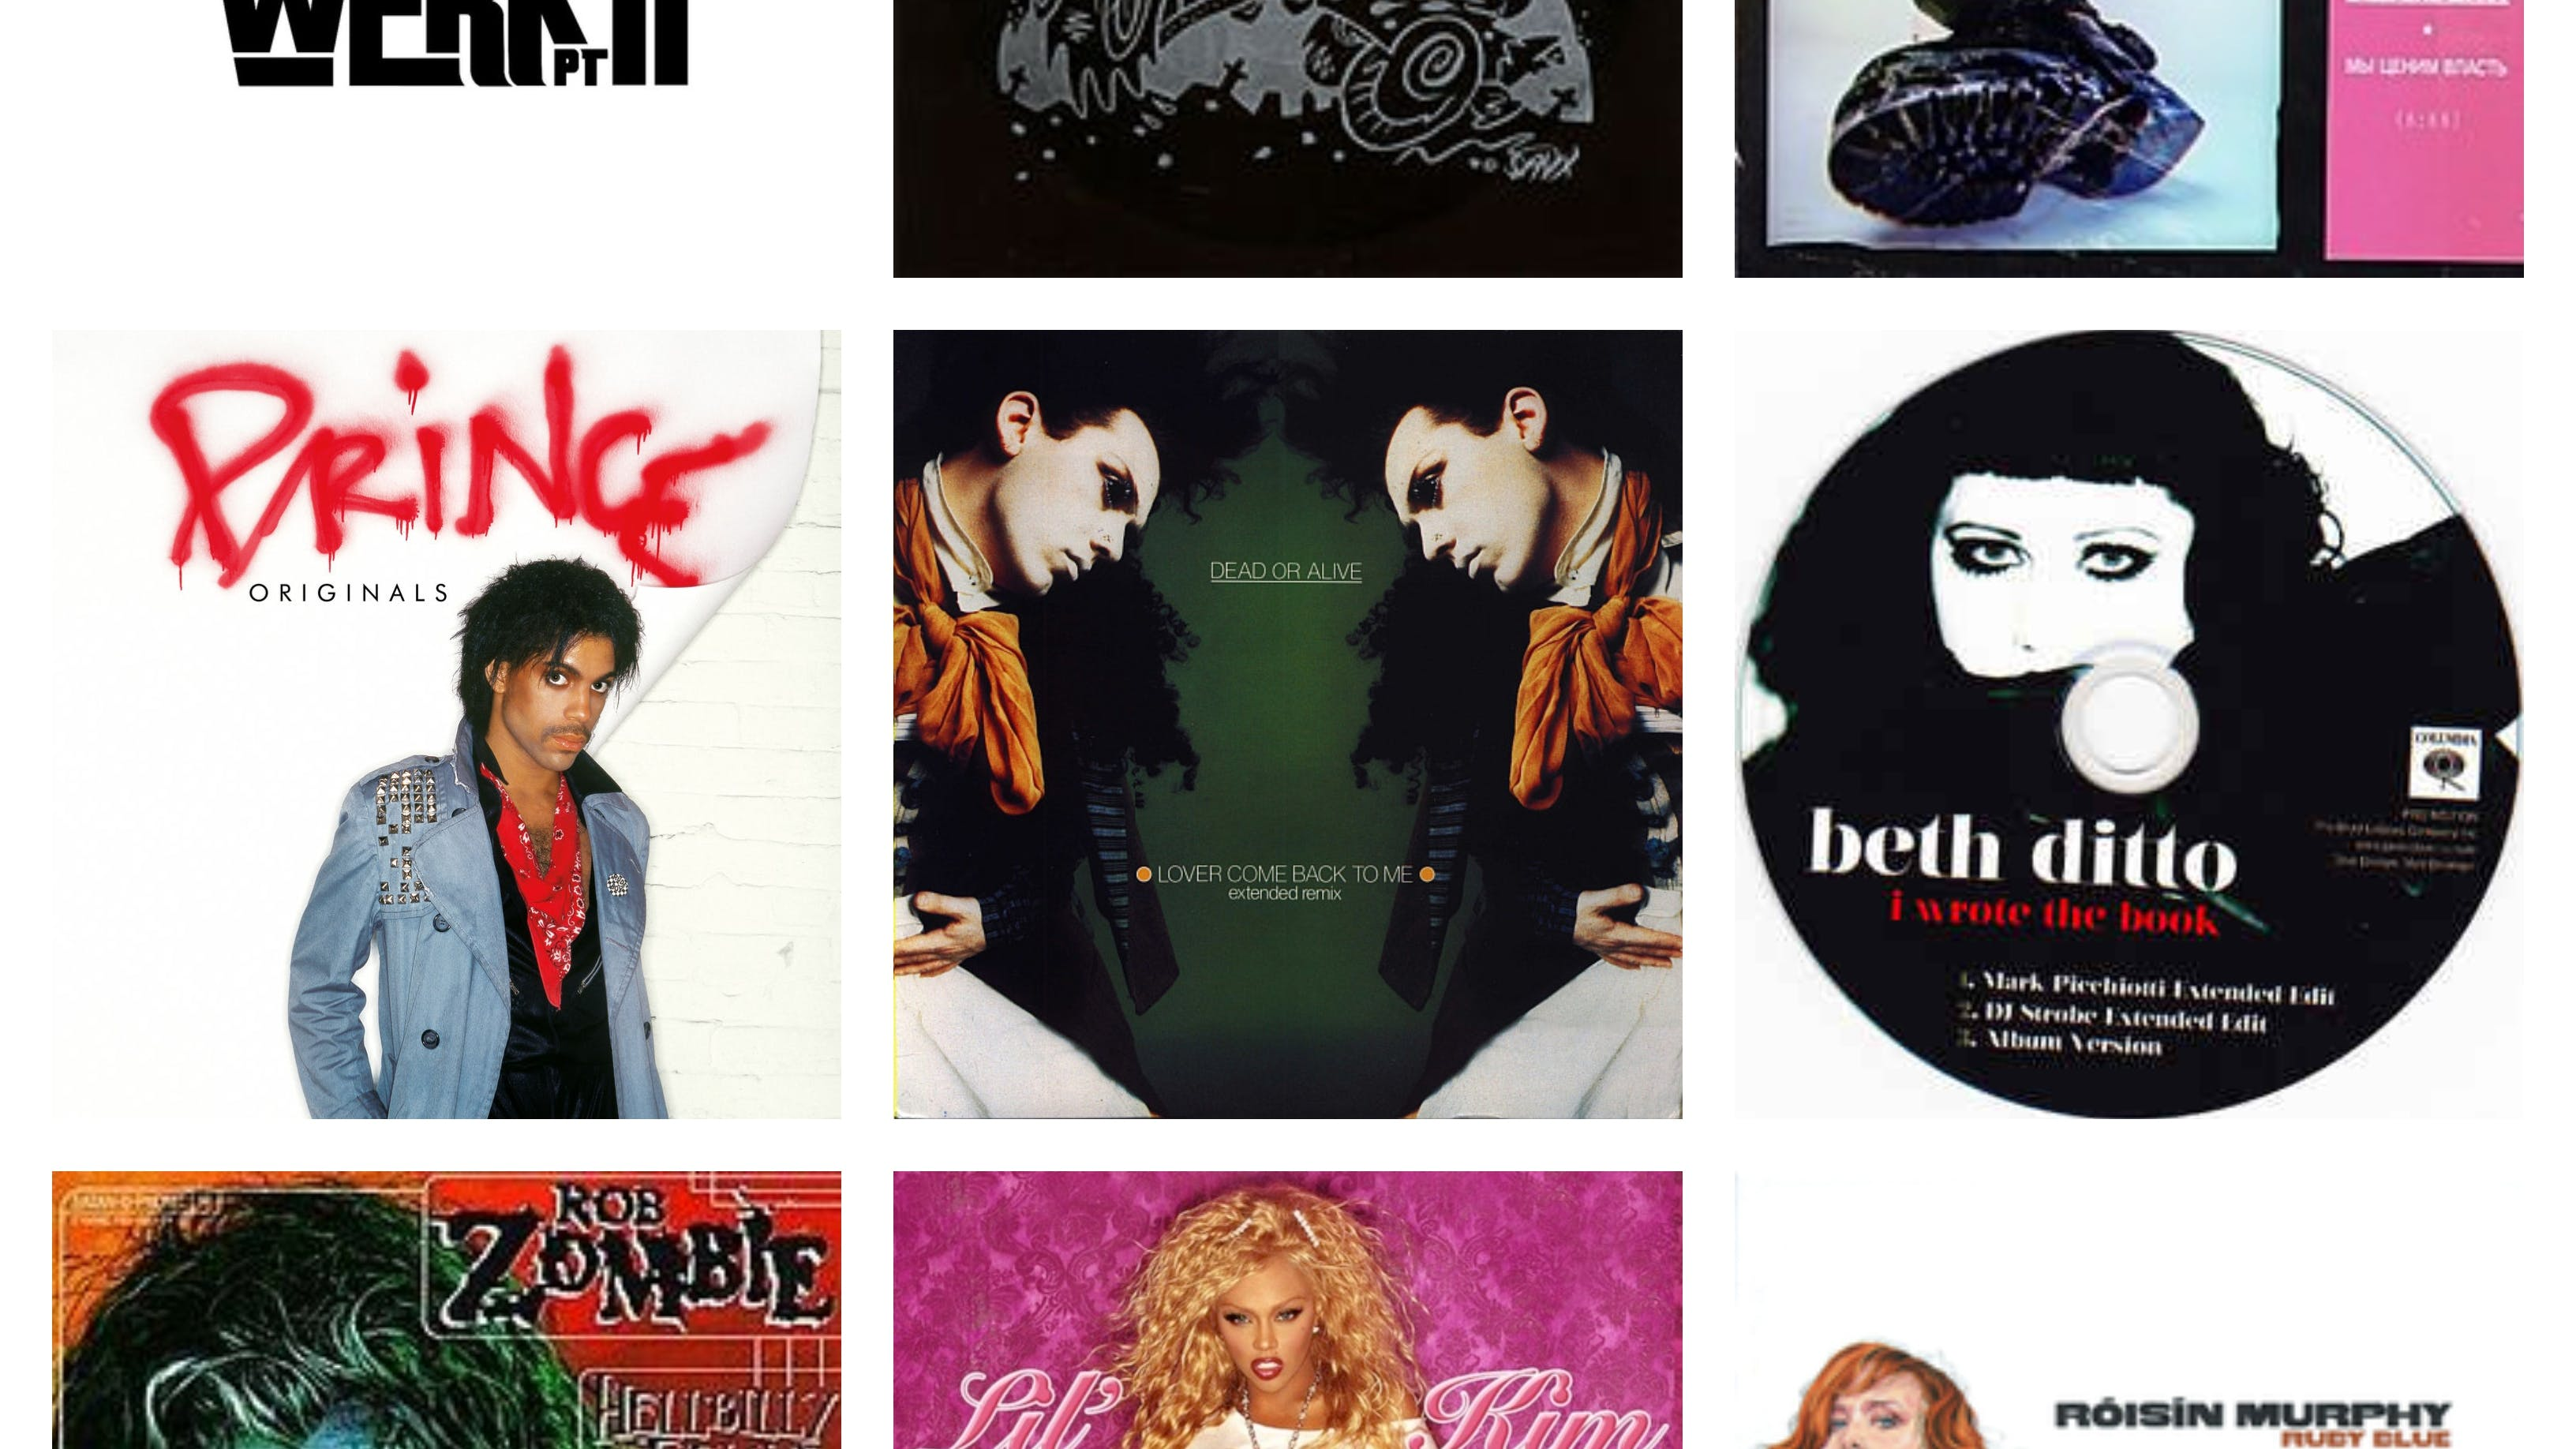 FRIDAY PLAYLIST: WHAT A LOAD OF BOLLOX